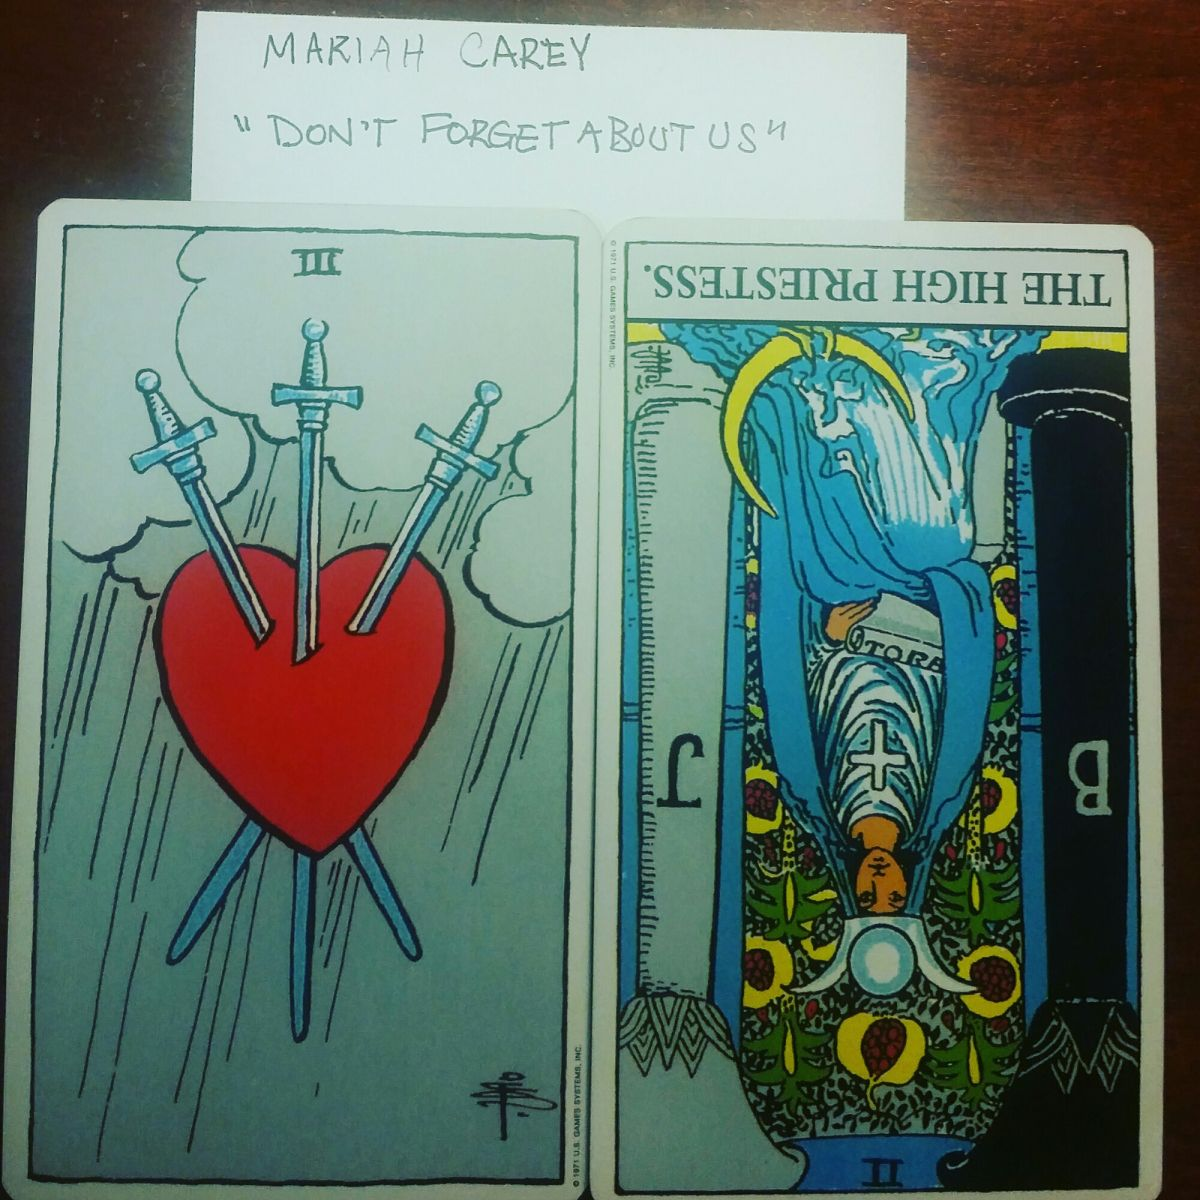 3 of Swords and Trepidation